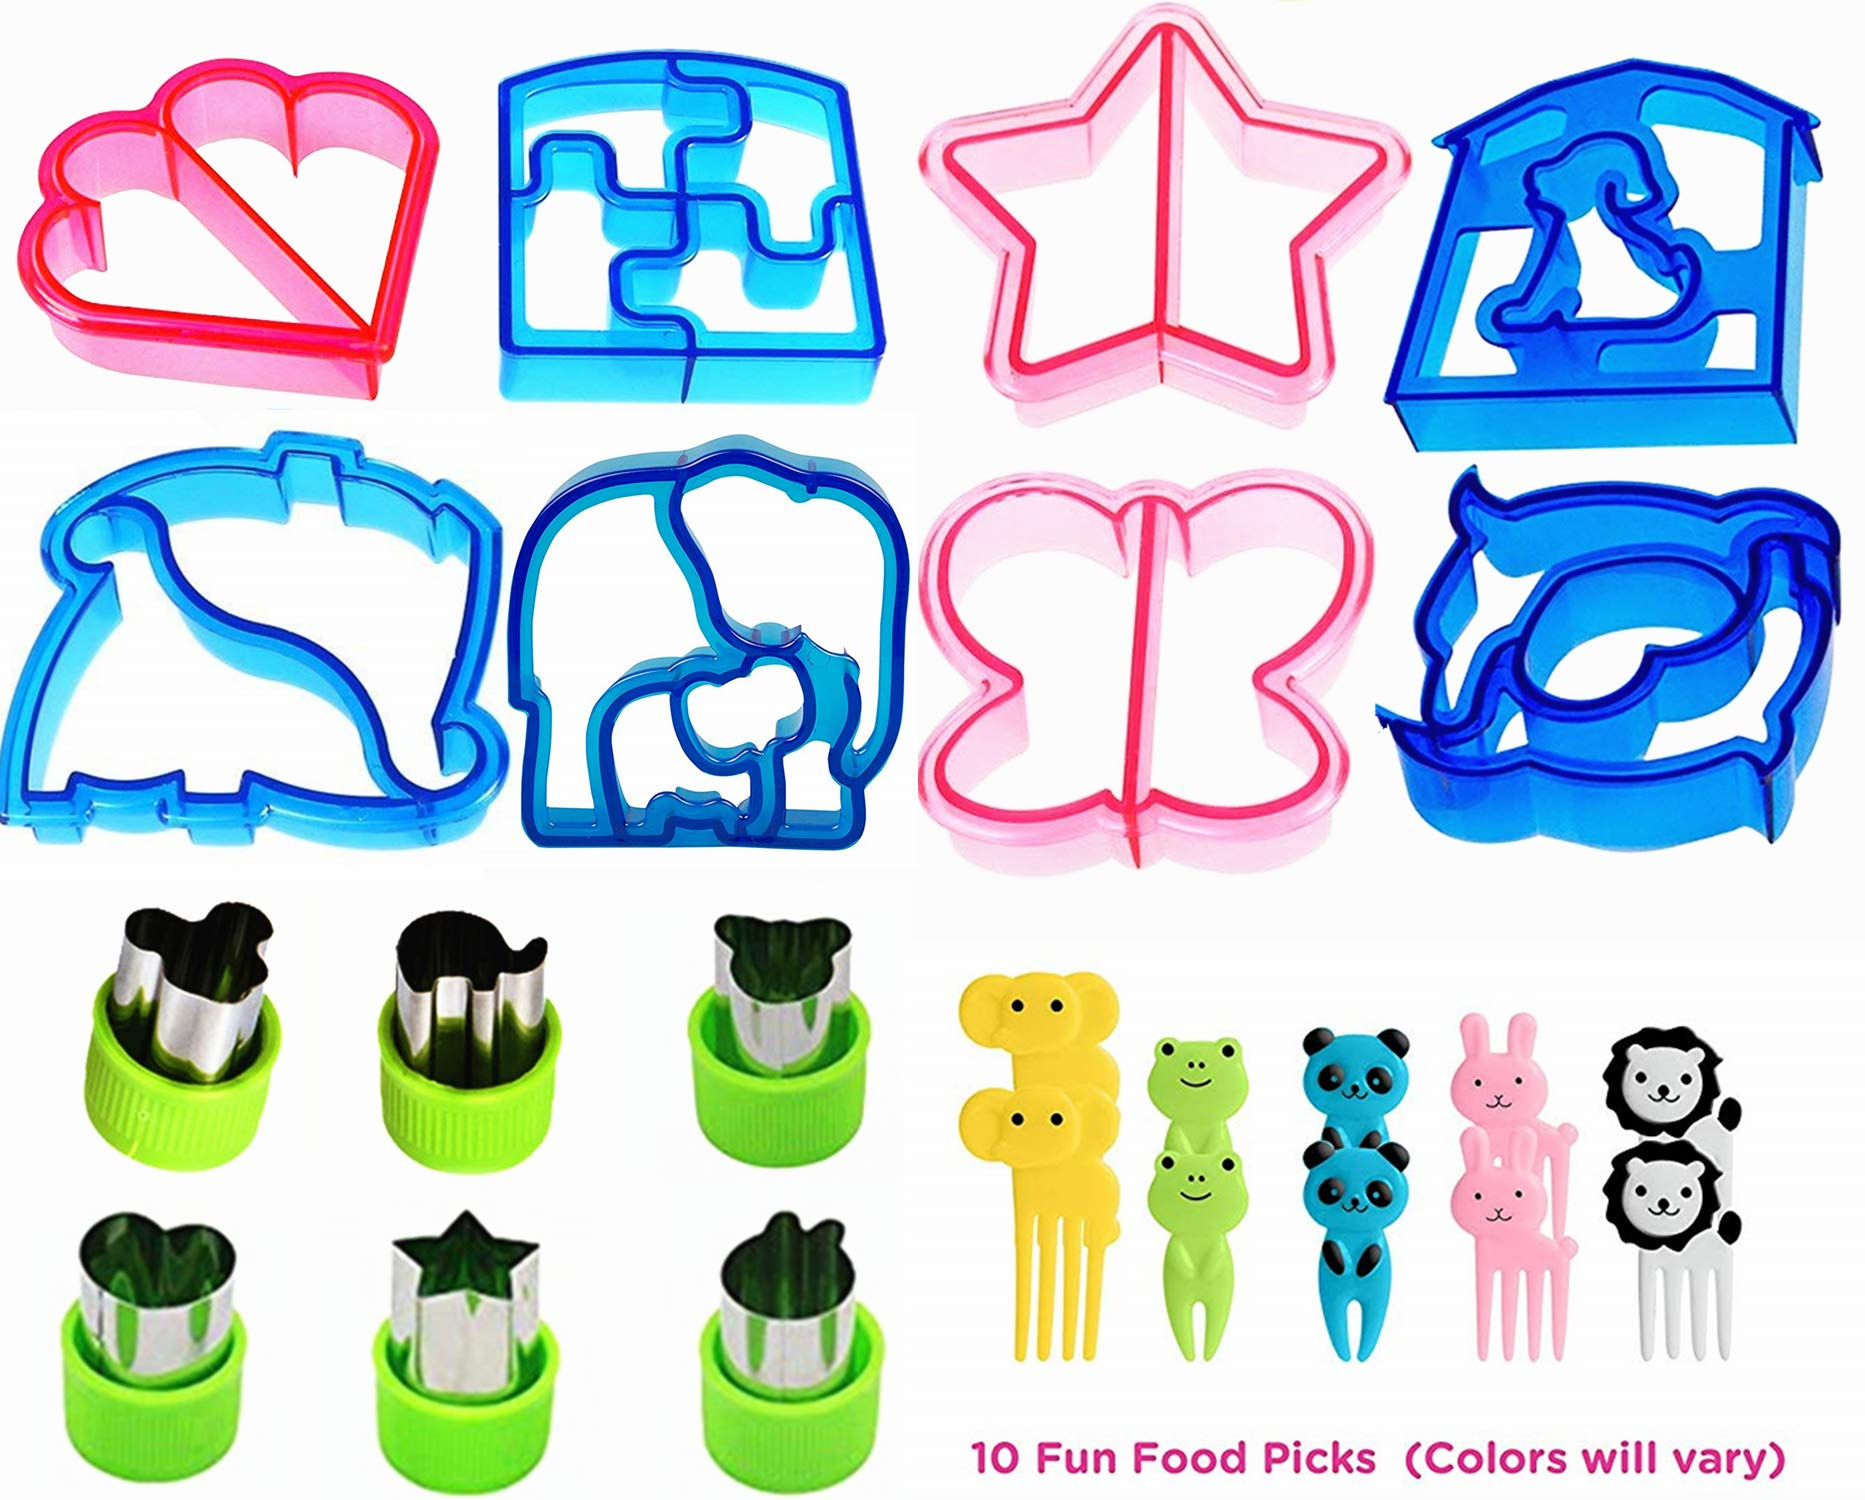 Fun Sandwich and Bread Cutter Shapes for kids - 8 Crust & Cookie Cutters - PLUS 6 Mini Vegetable & Fruit Stamp Set and 10 Food Picks -Turn Vegetables, Fruits, Cheese, and Cookie Into Fun Bites